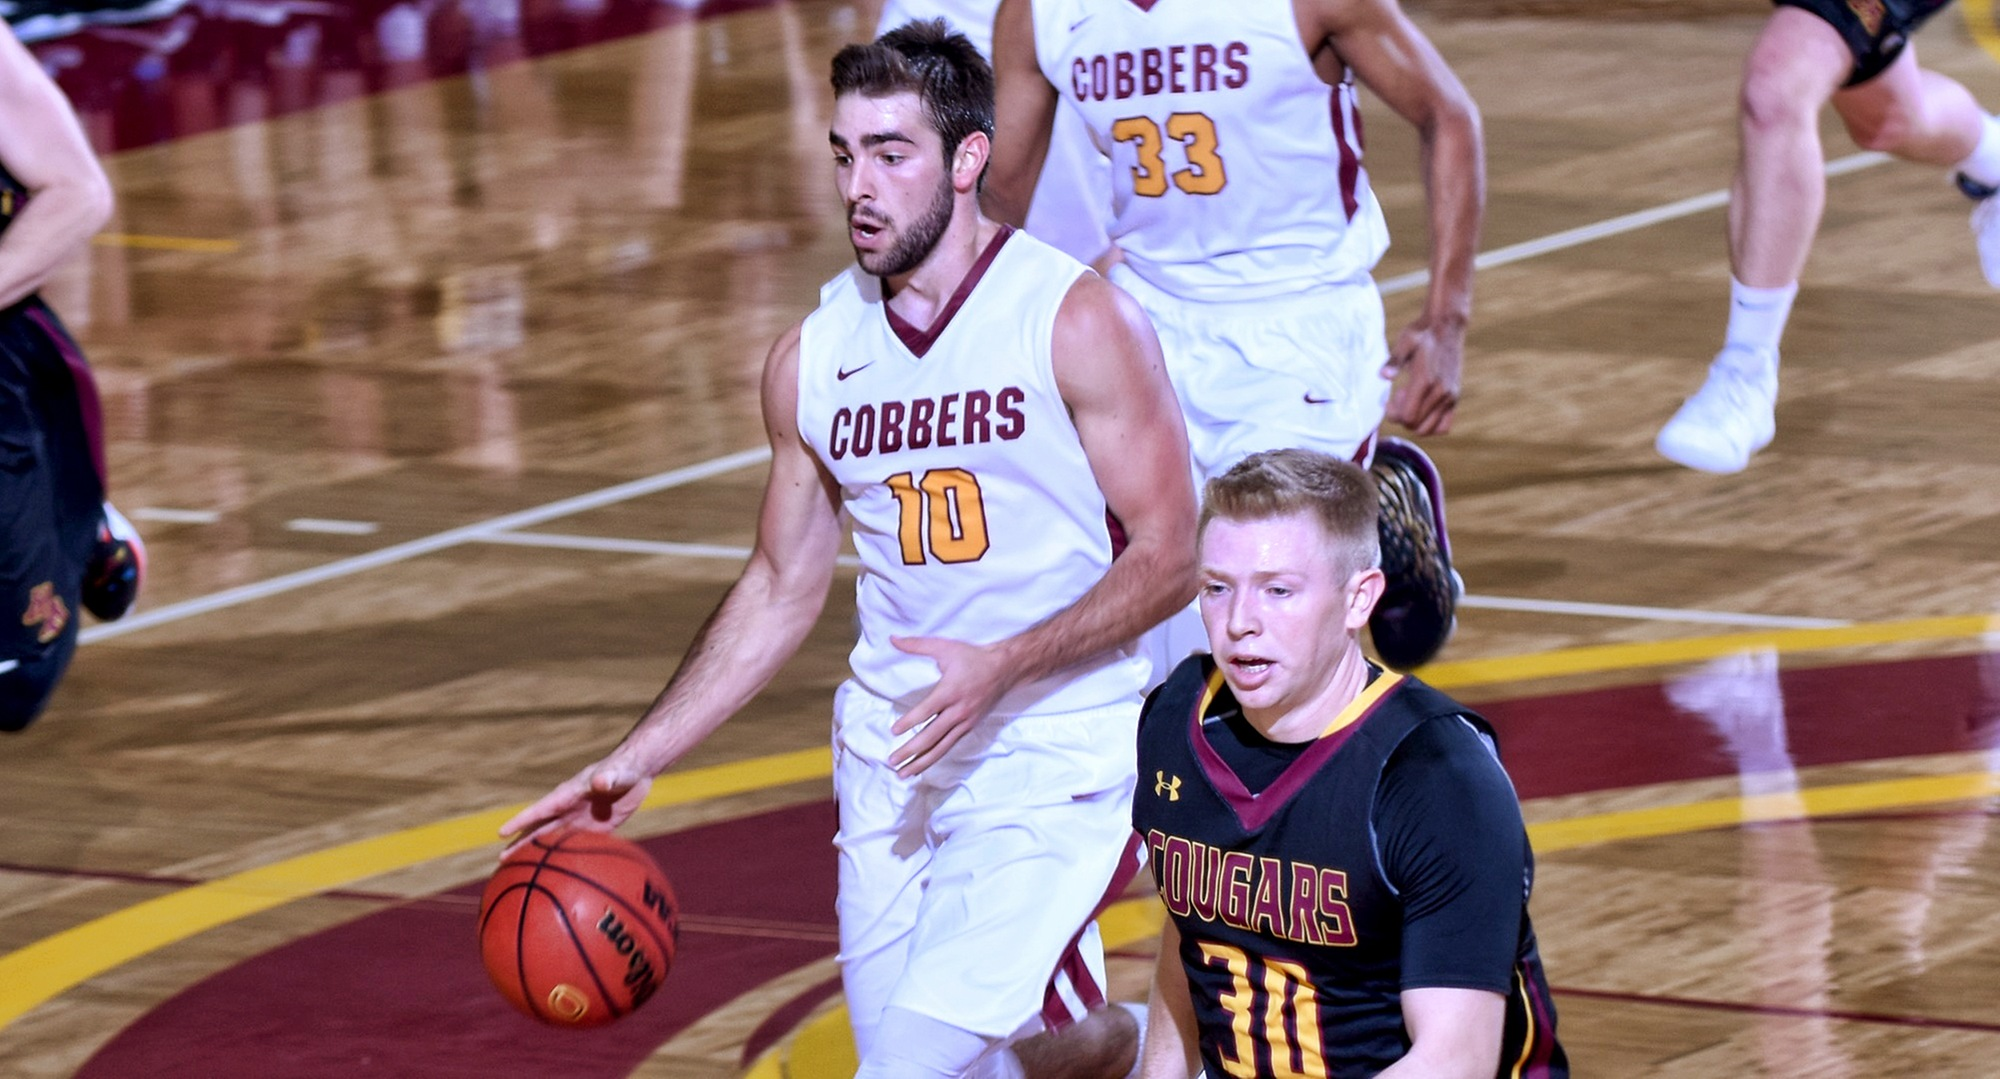 Senior Tommy Schyma dribbles the ball up the court on the fast break during the Cobbers' season opener with Minn.-Morris. He led all players with 27 points.